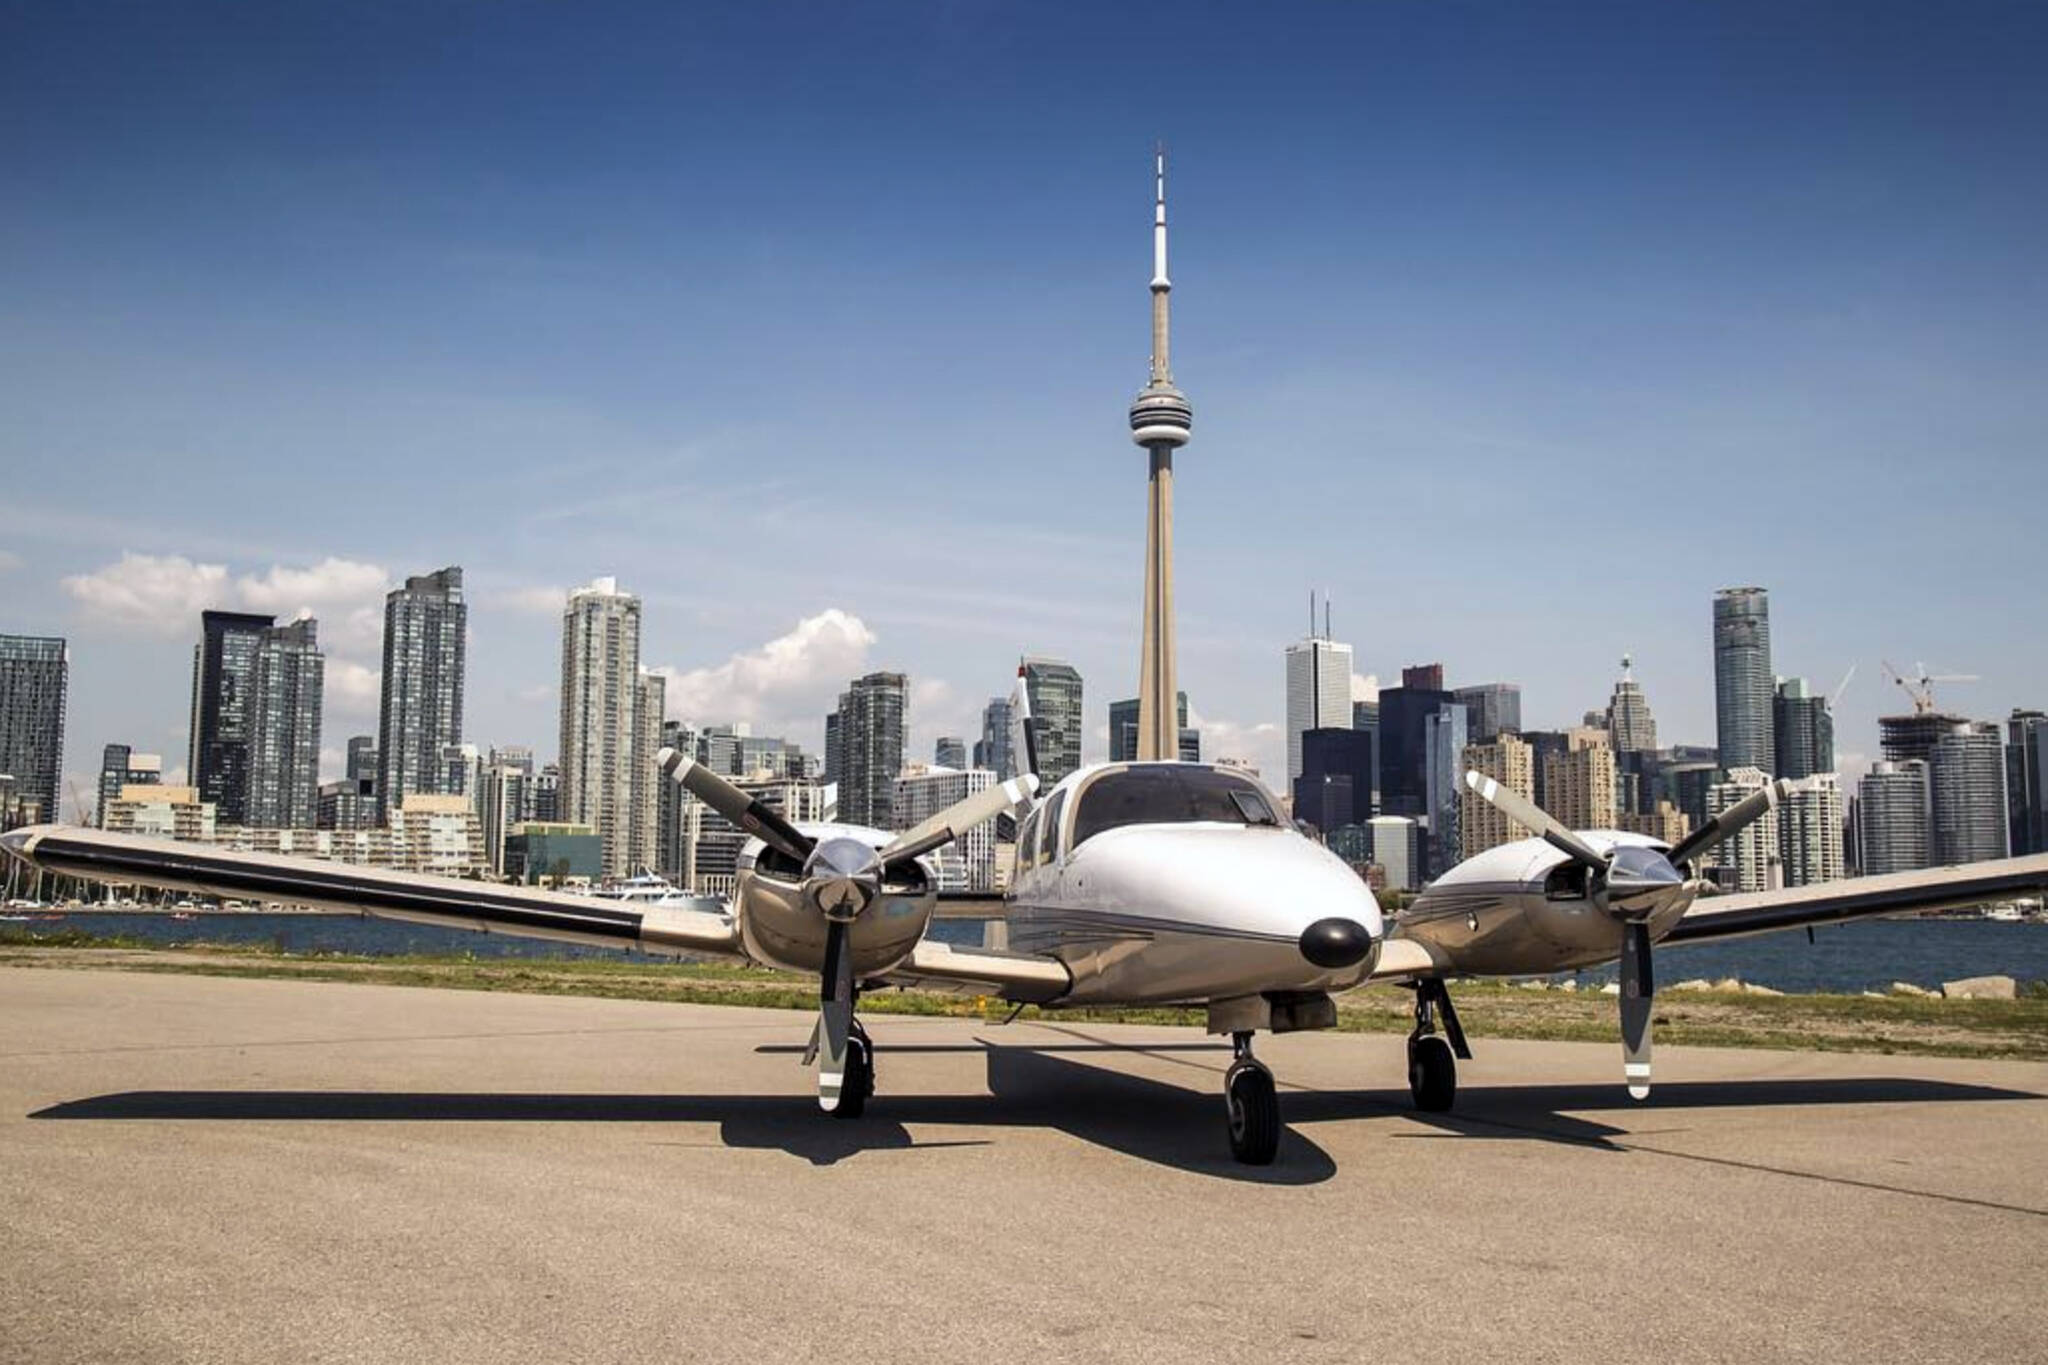 You can soon fly from Toronto to Barrie and Waterloo